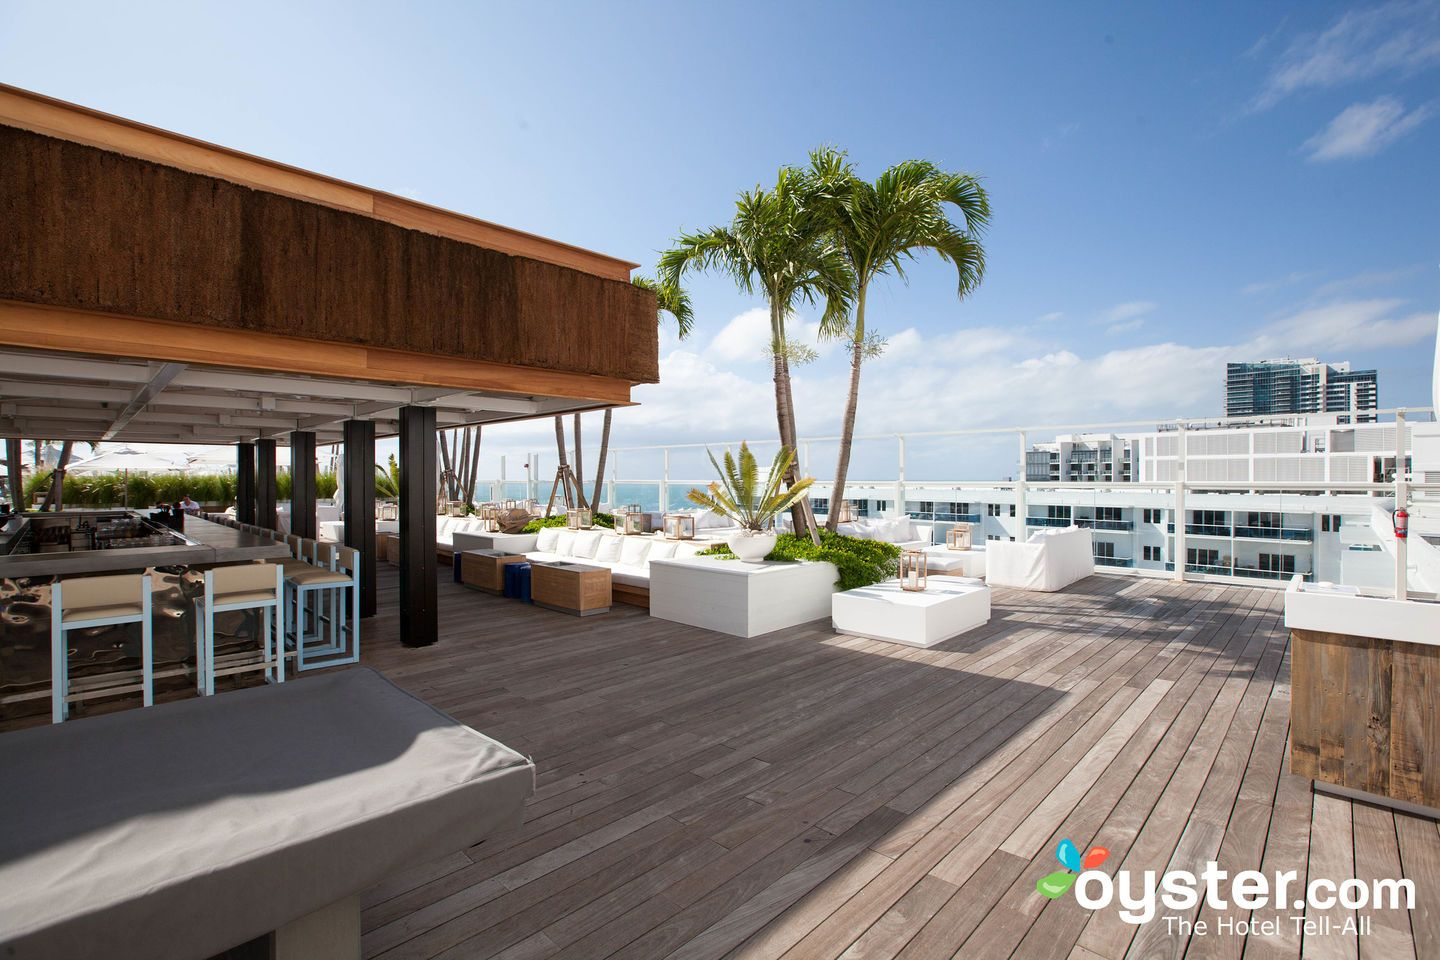 1 Hotel South Beach Review What To Really Expect If You Stay South Beach Hotels Rooftop Bar Hotel